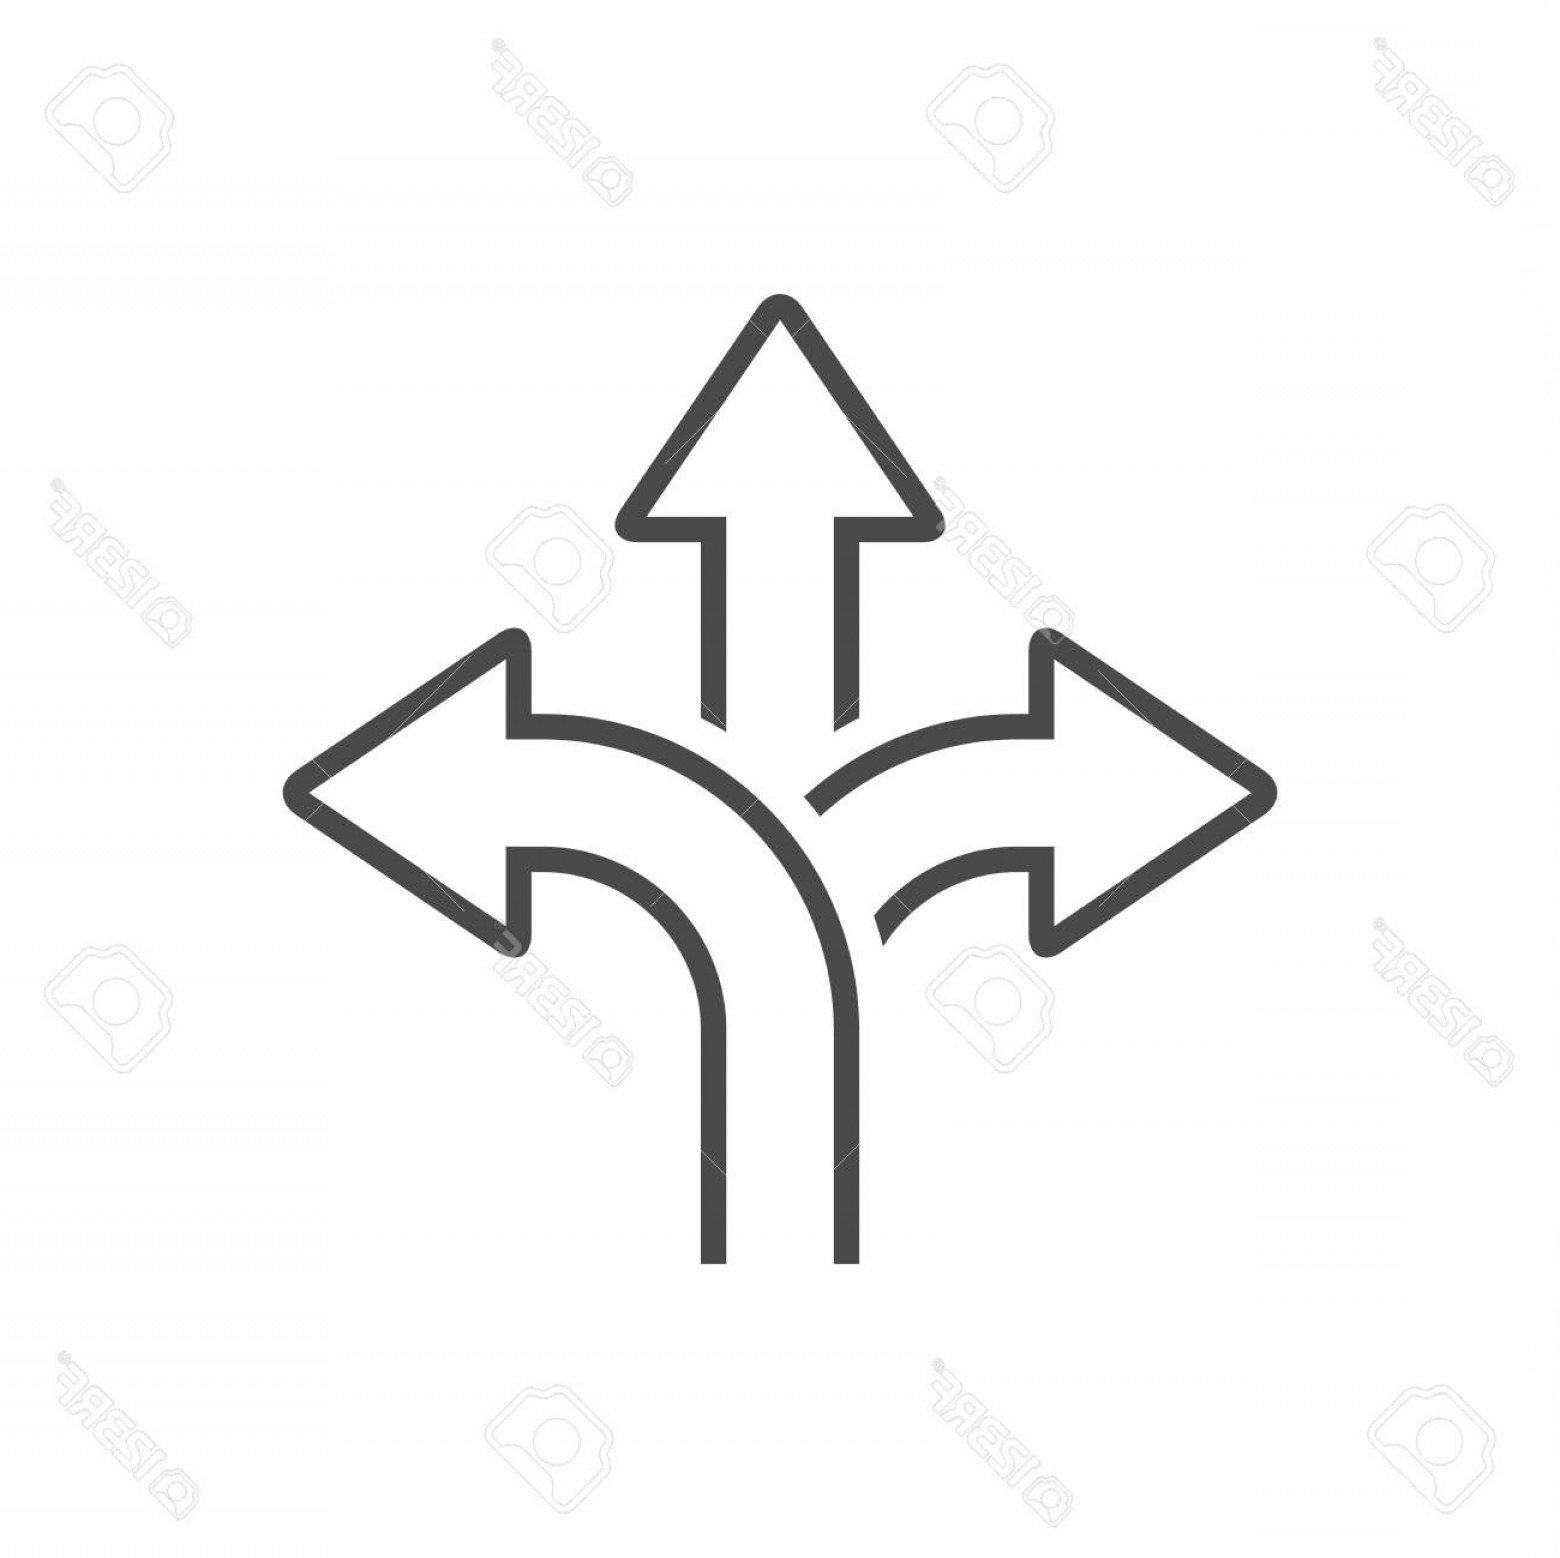 Vector Signal Direction: Photostock Vector Three Way Direction Arrow Icon Road Sign Direction Signal